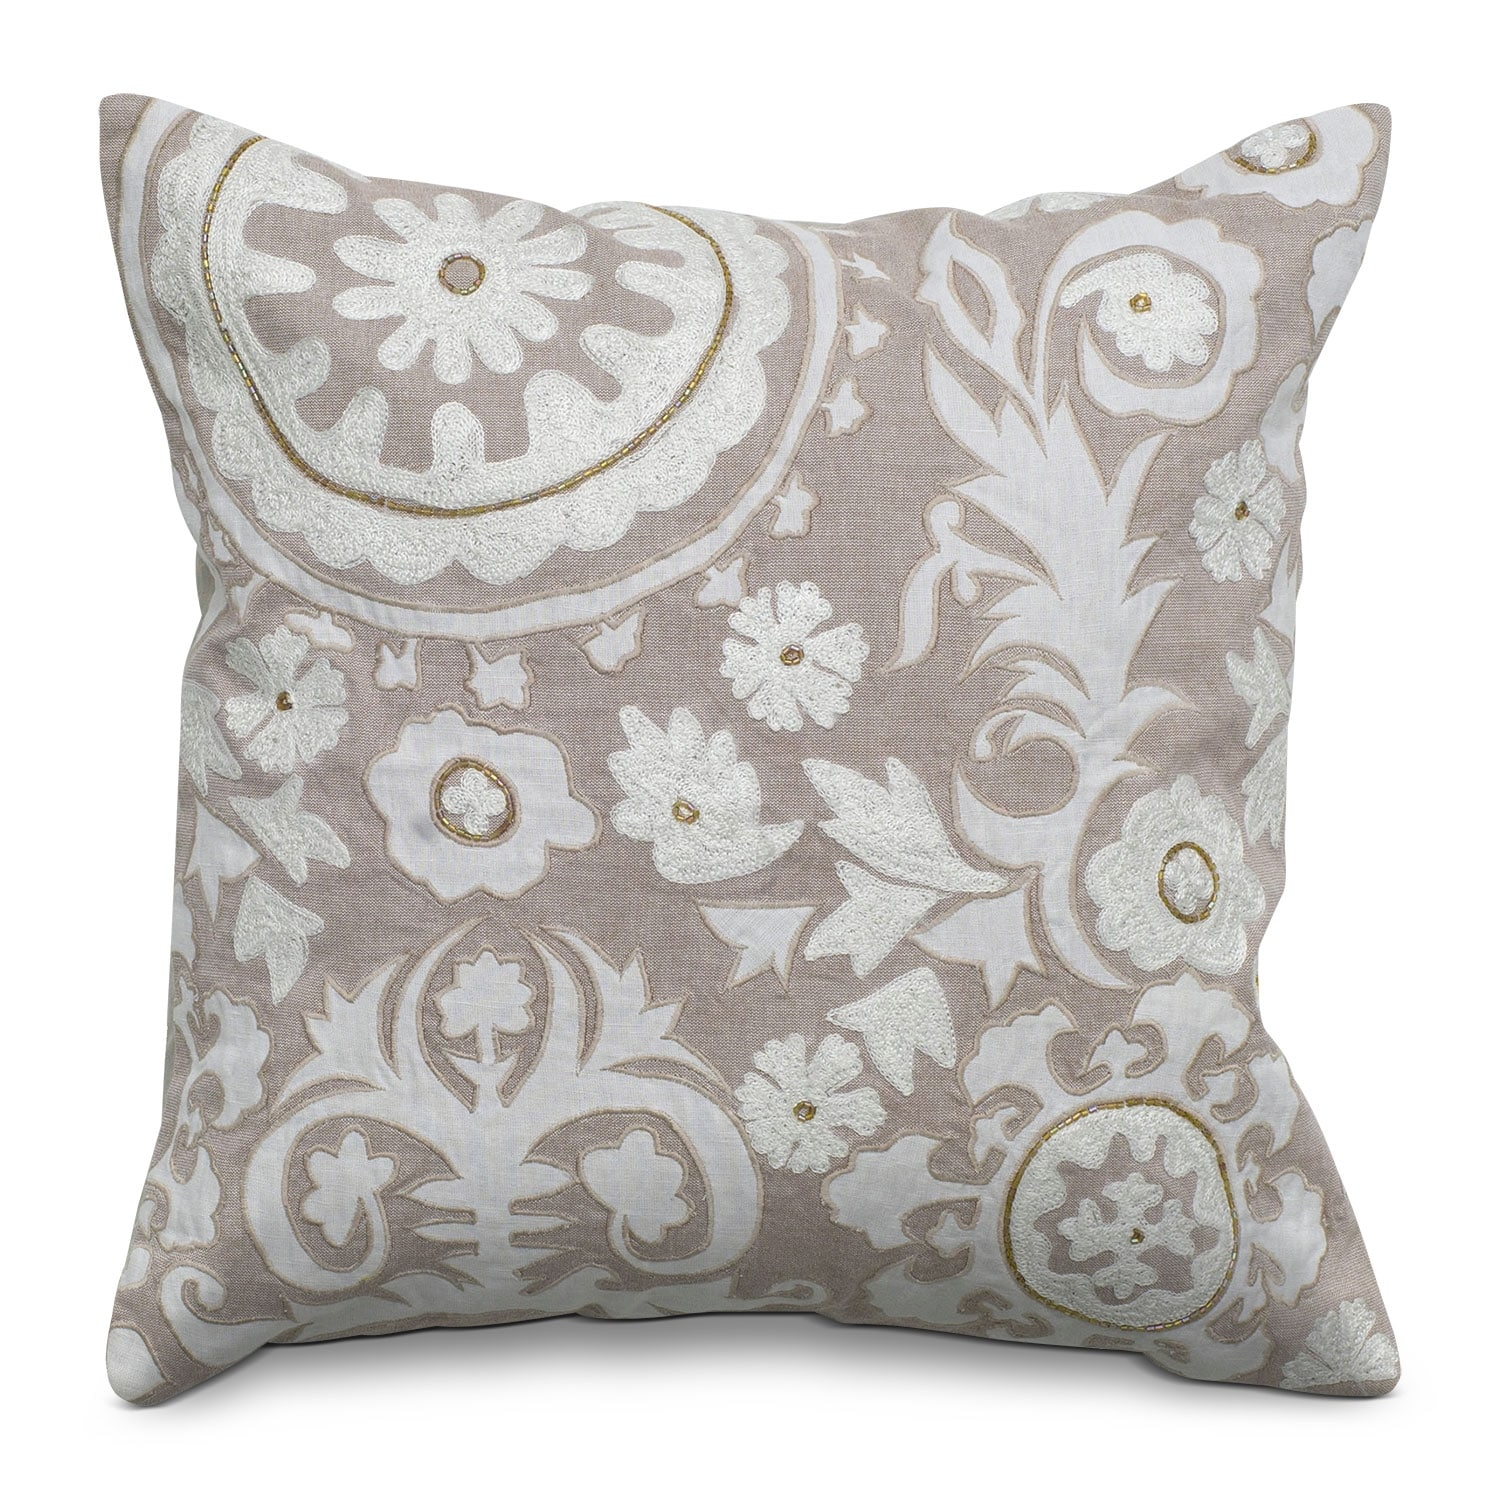 Genesis Decorative Pillow